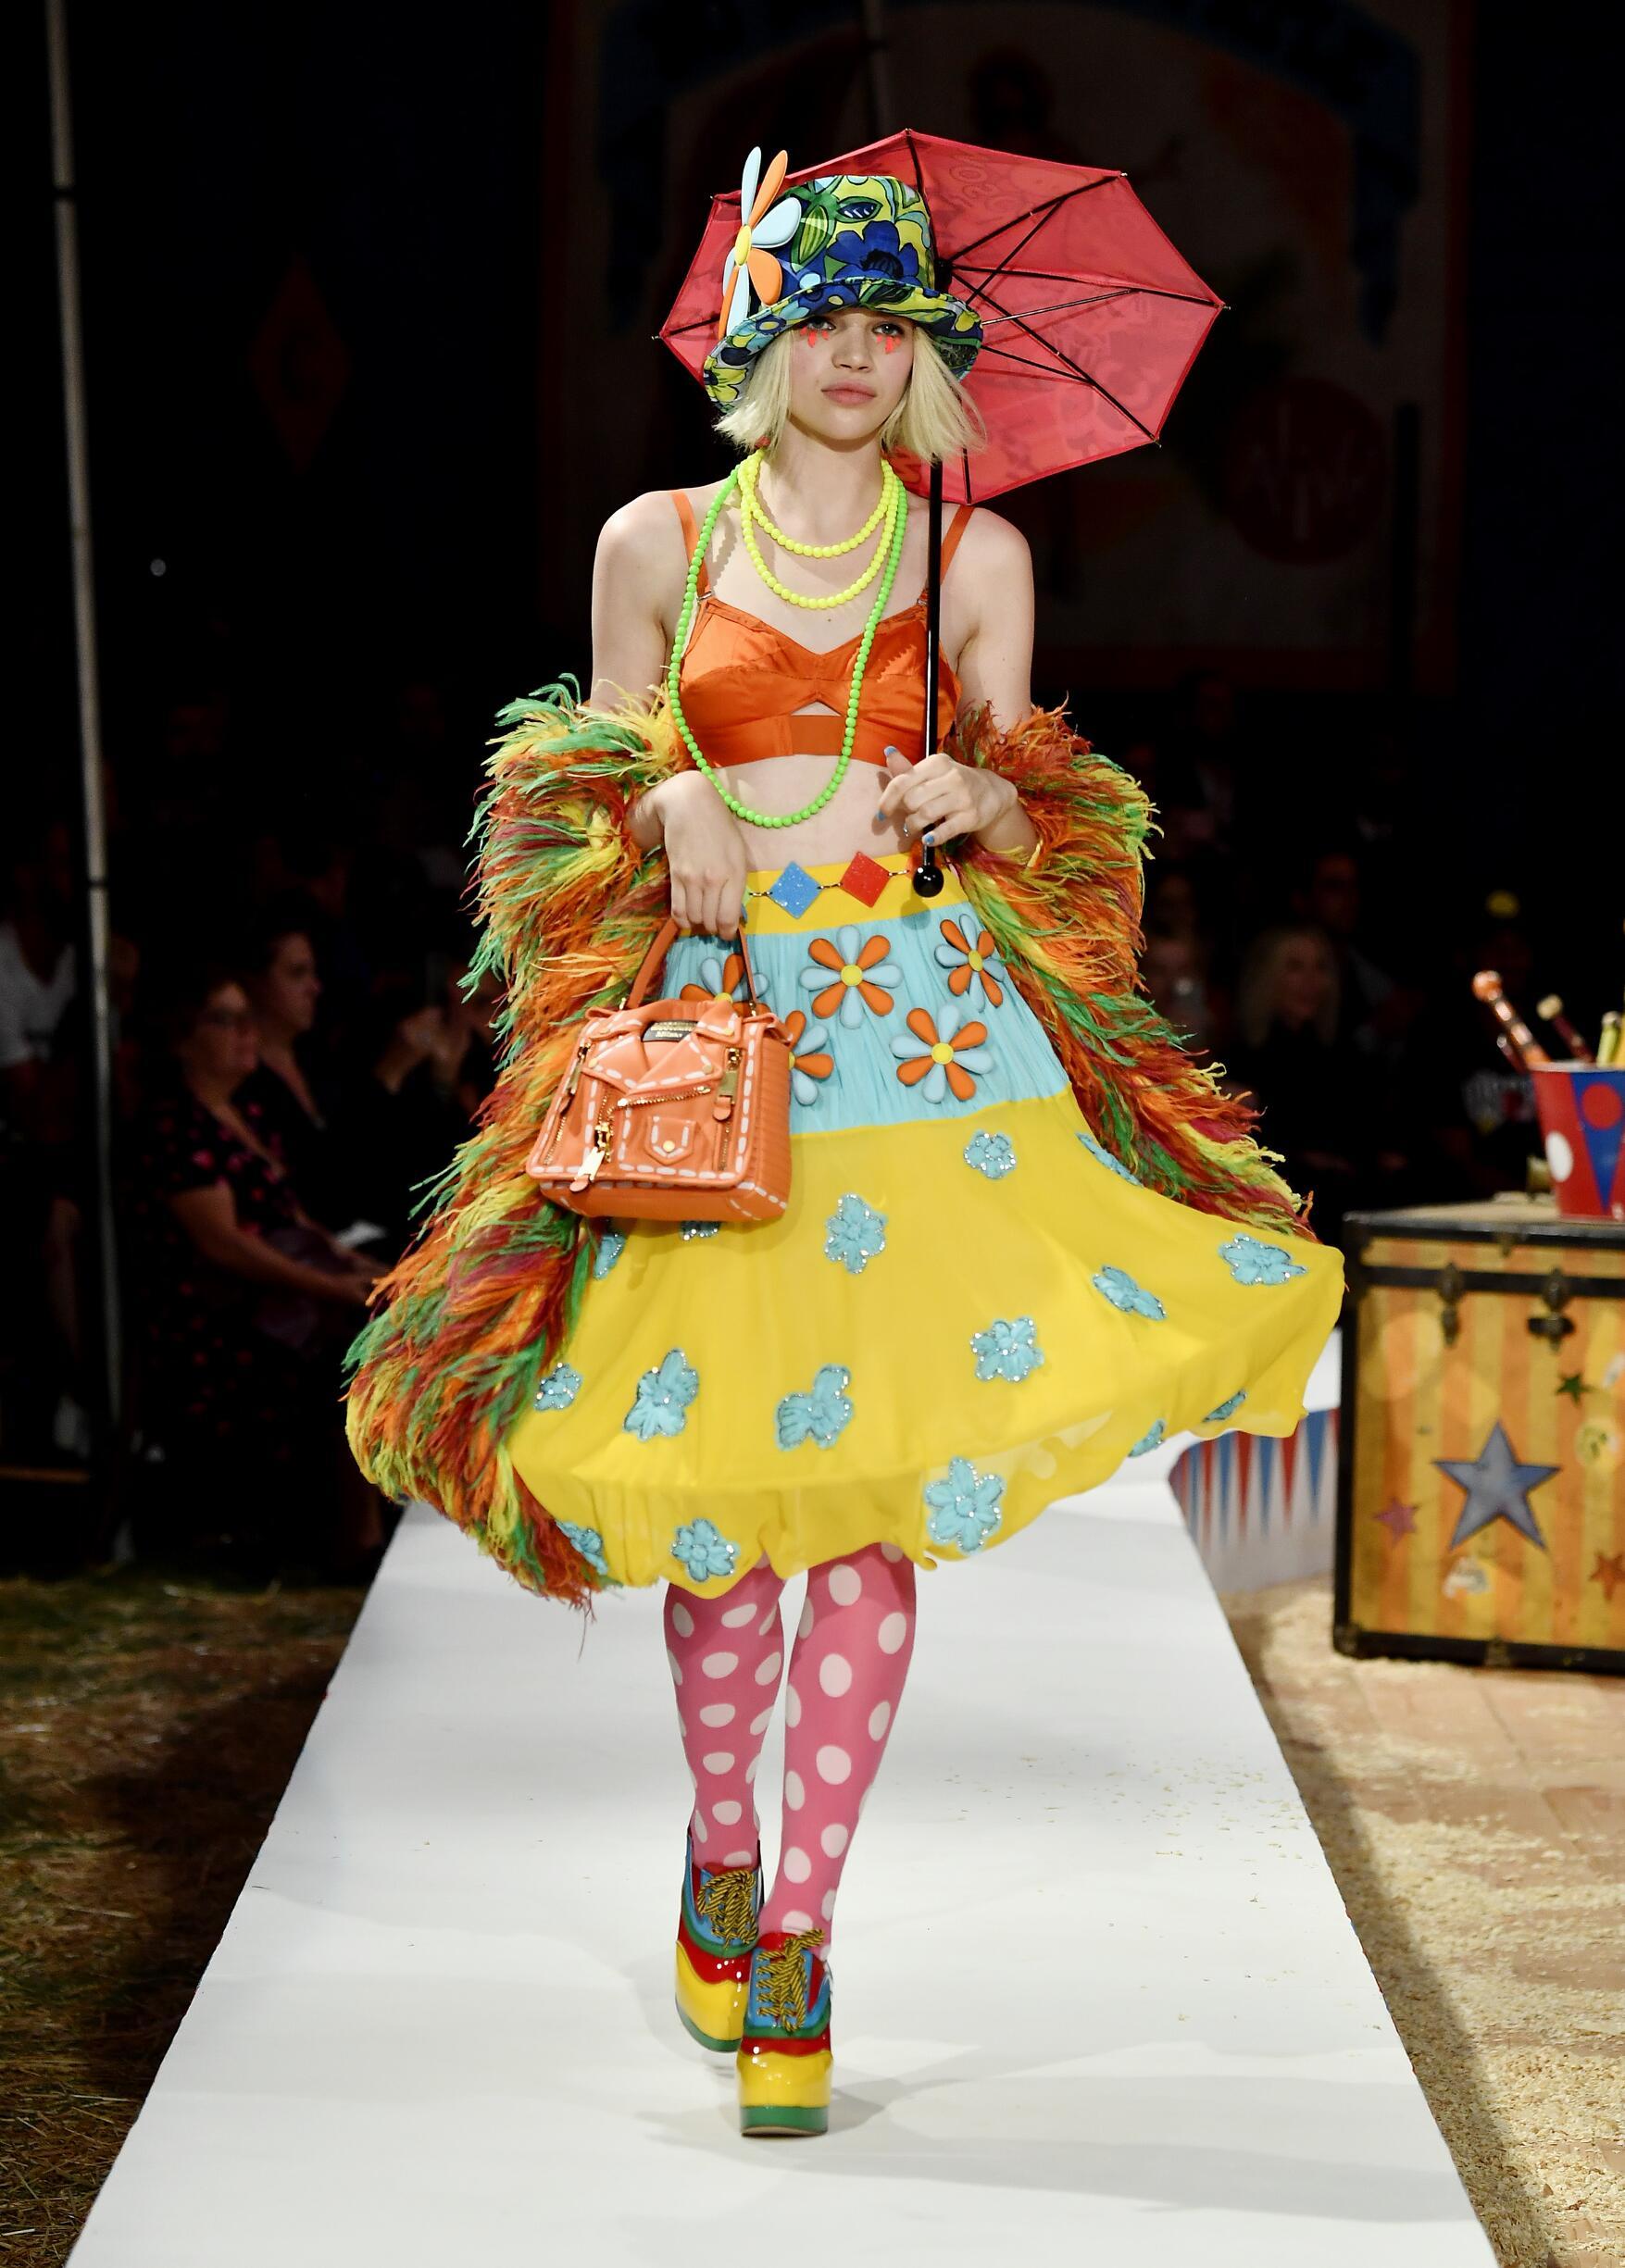 Moschino Spring Summer 2019 Menswear and Women's Resort Collection Look 56 Los Angeles